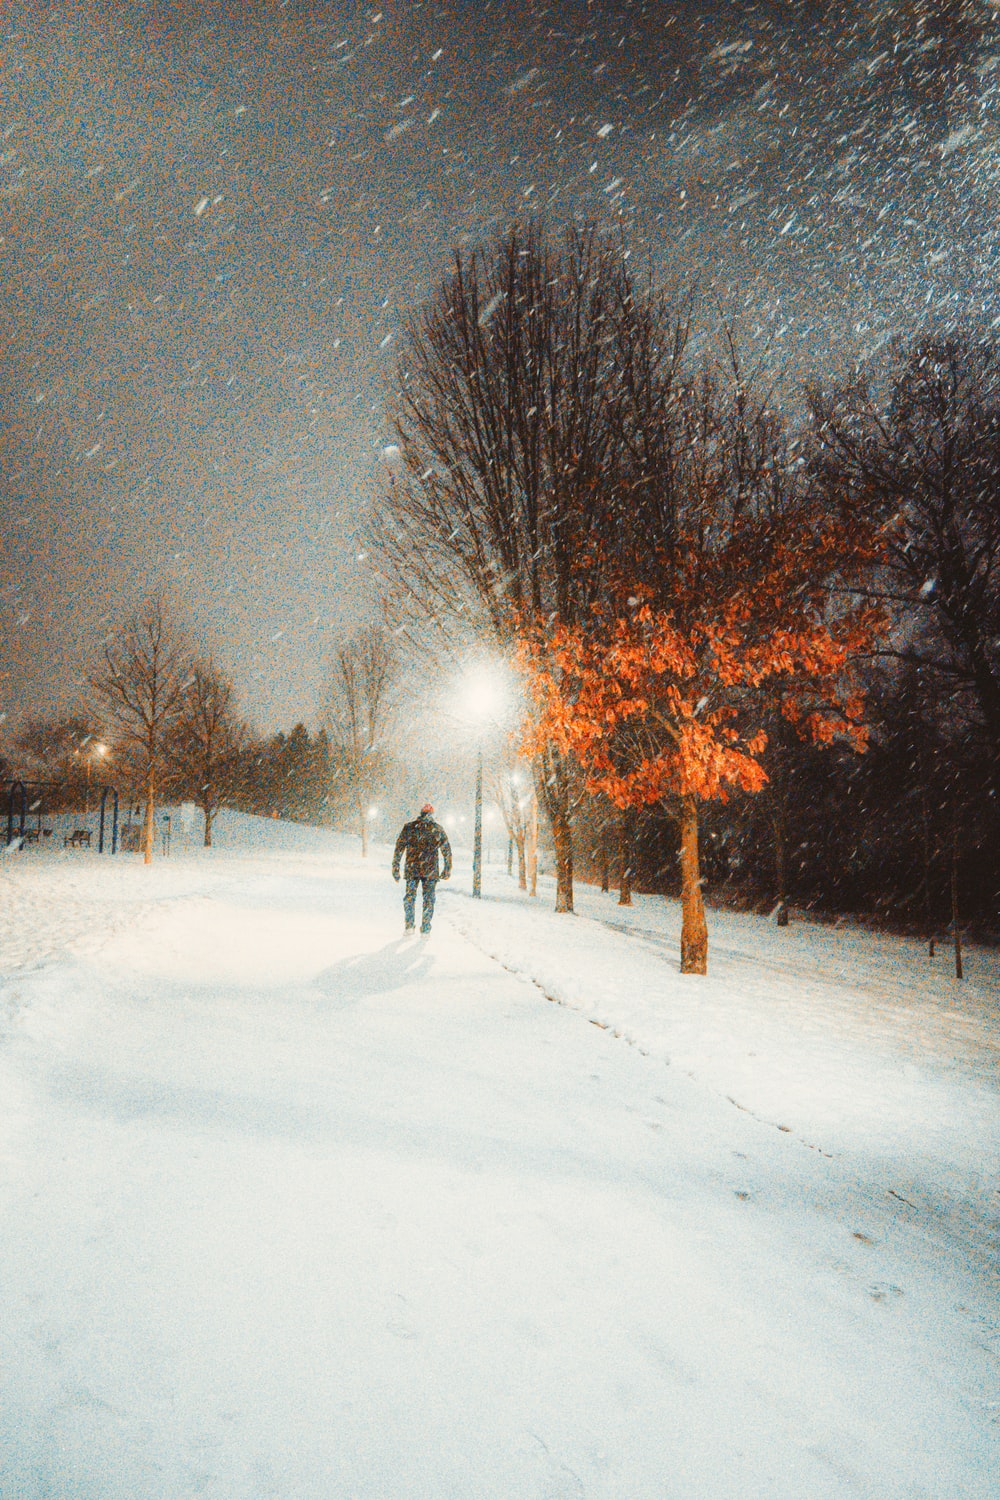 person walking on snow covered road during night time